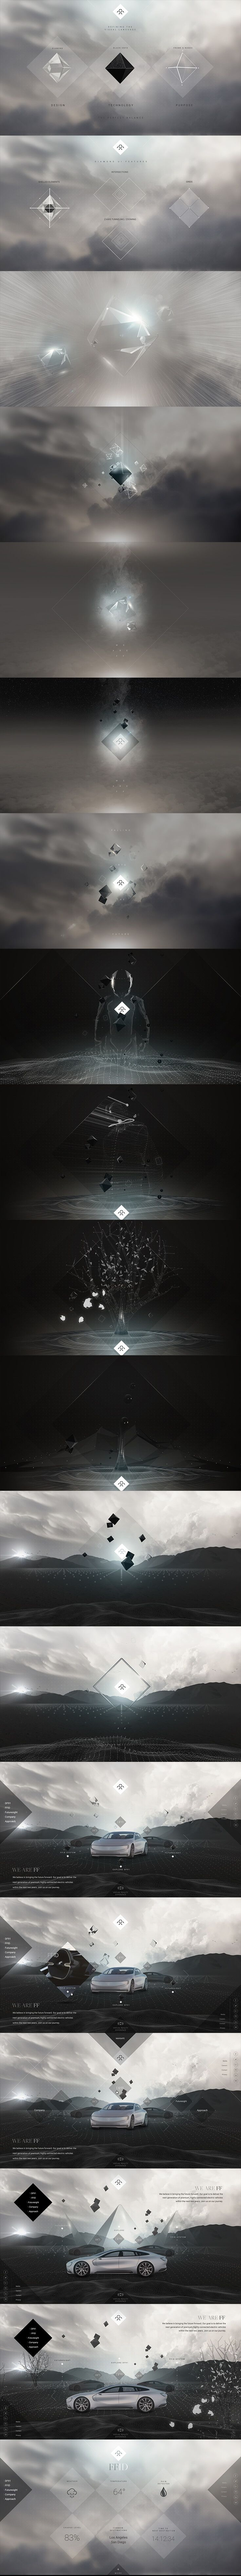 Faraday Future - Interactive design concepts by Eric Jordan [Set 3] #design #webdesign #website